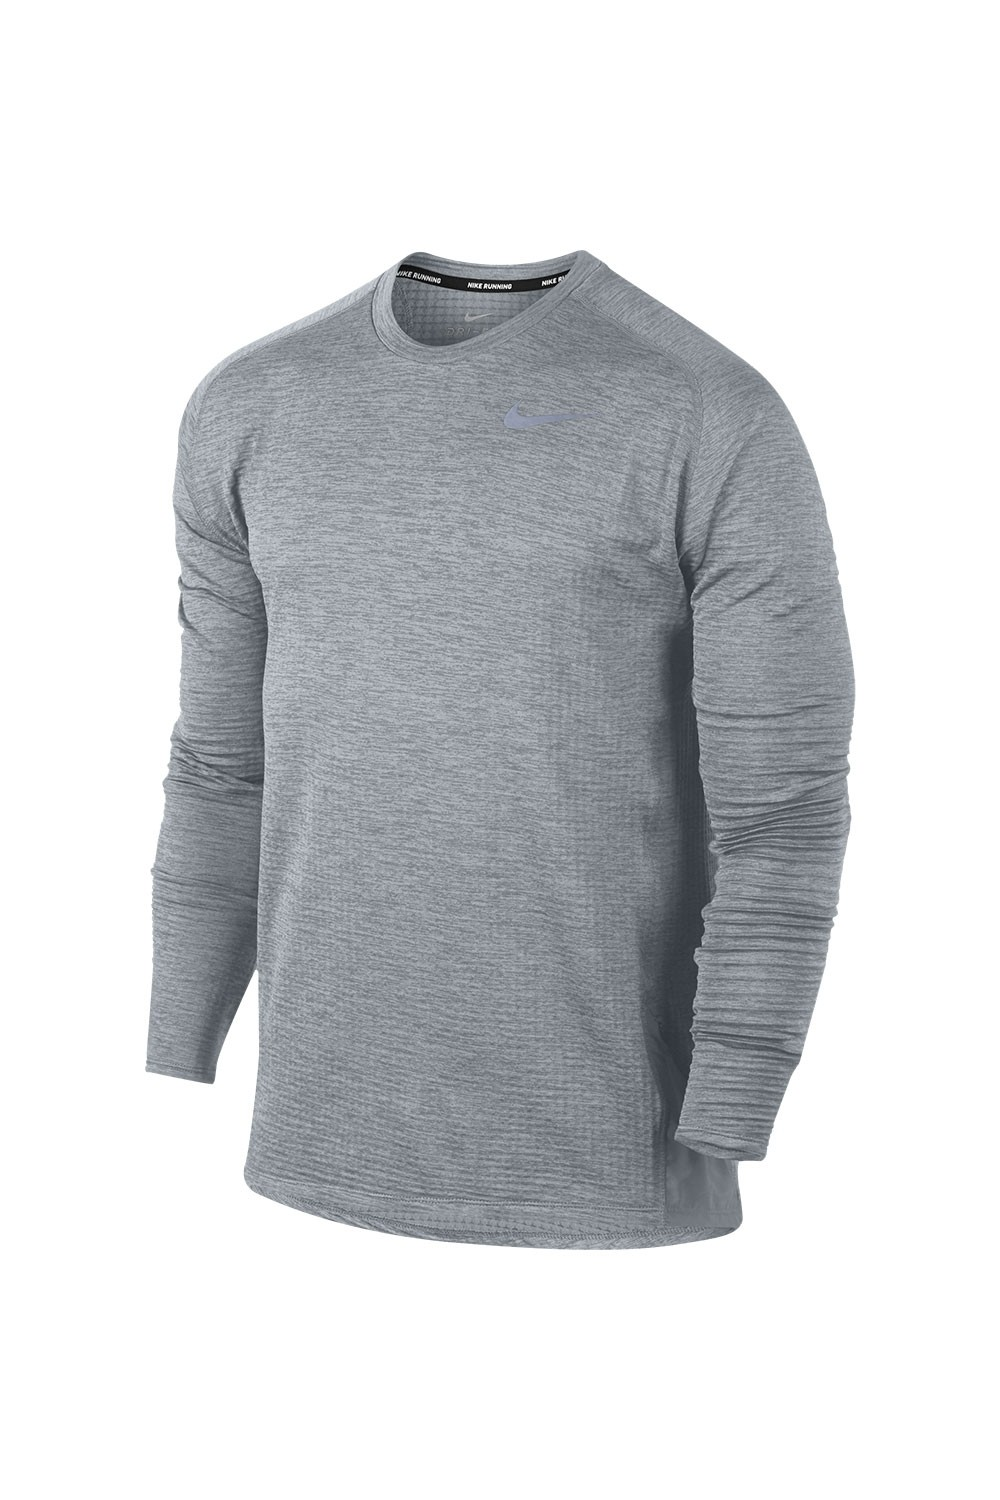 Men's Nike Therma Sphere Long Sleeve Crew